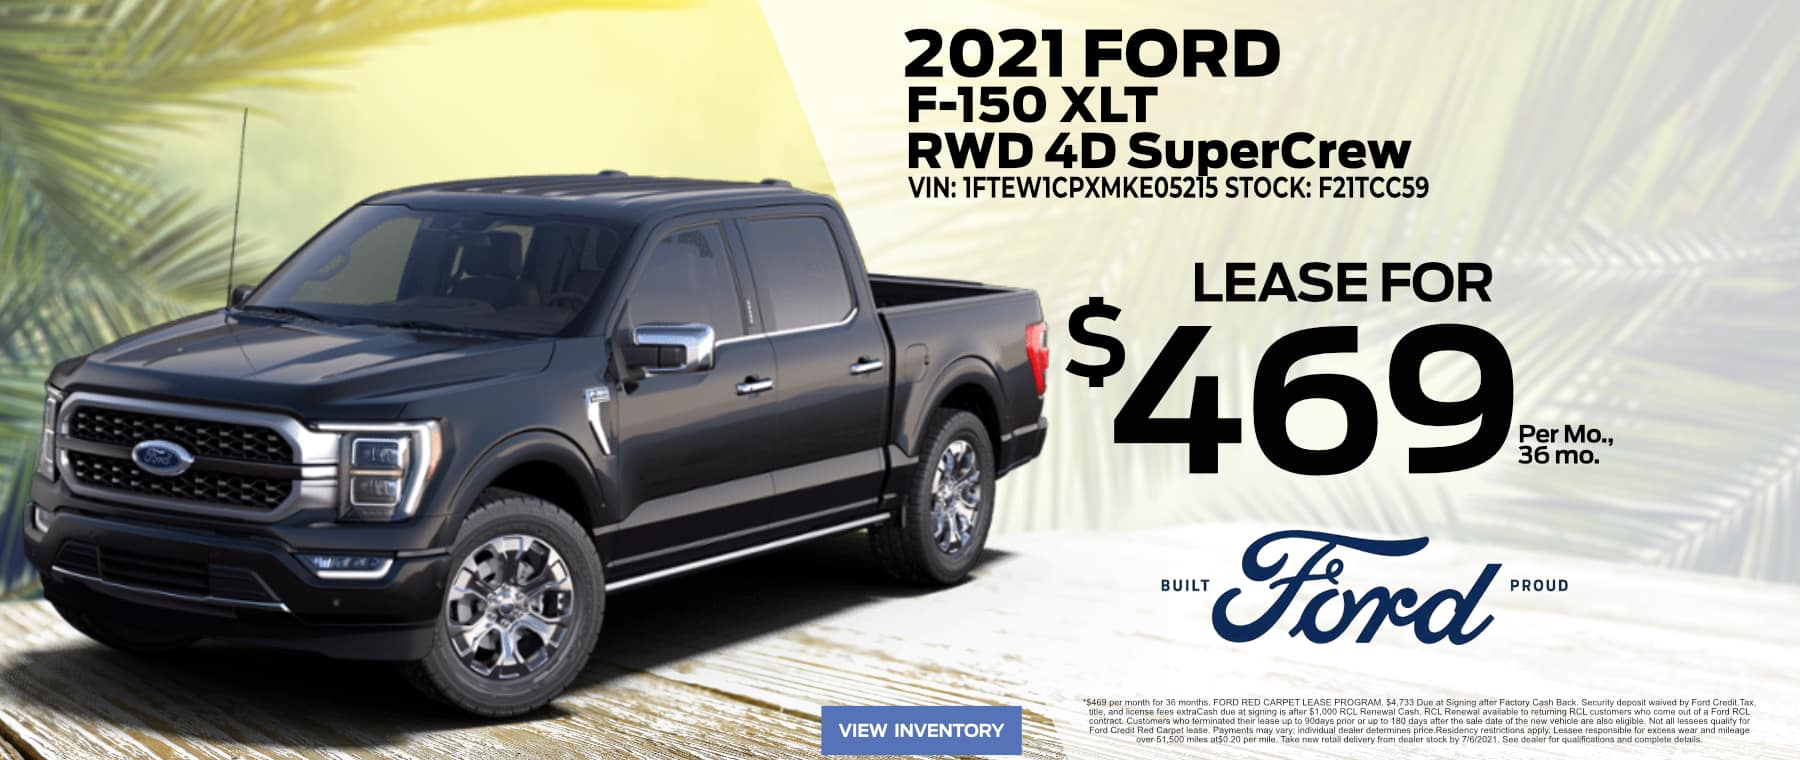 R_June_2021_F-150_Lease_PSF